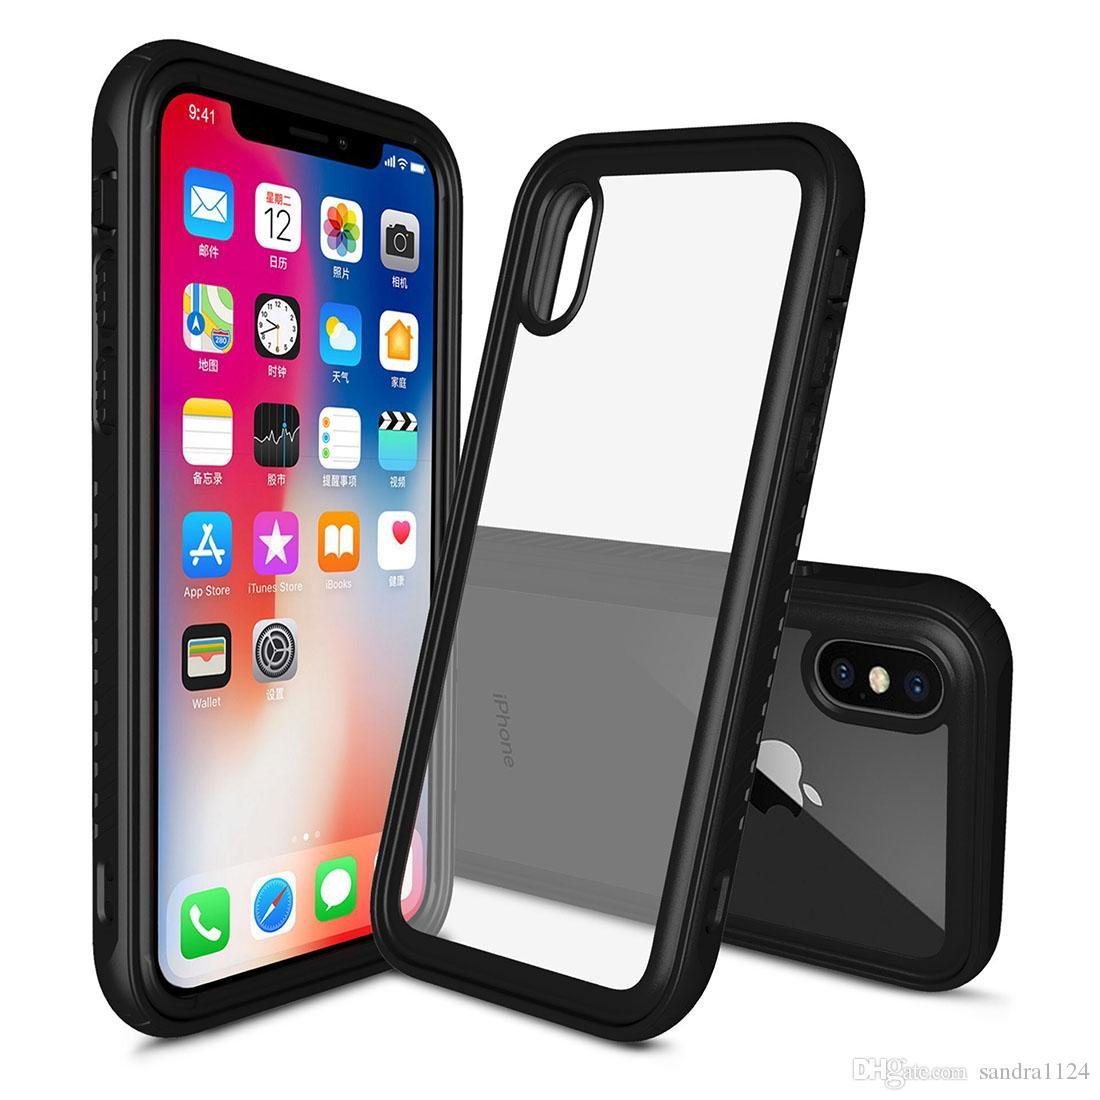 new product ff1a0 ba4ce For Iphone X Case Ultra Thin Transparent Soft Tpu Smartphone Protector  Shockproof Waterproof Ergonomic Anti Slip Design Cell Phone Pouch  Personalized ...